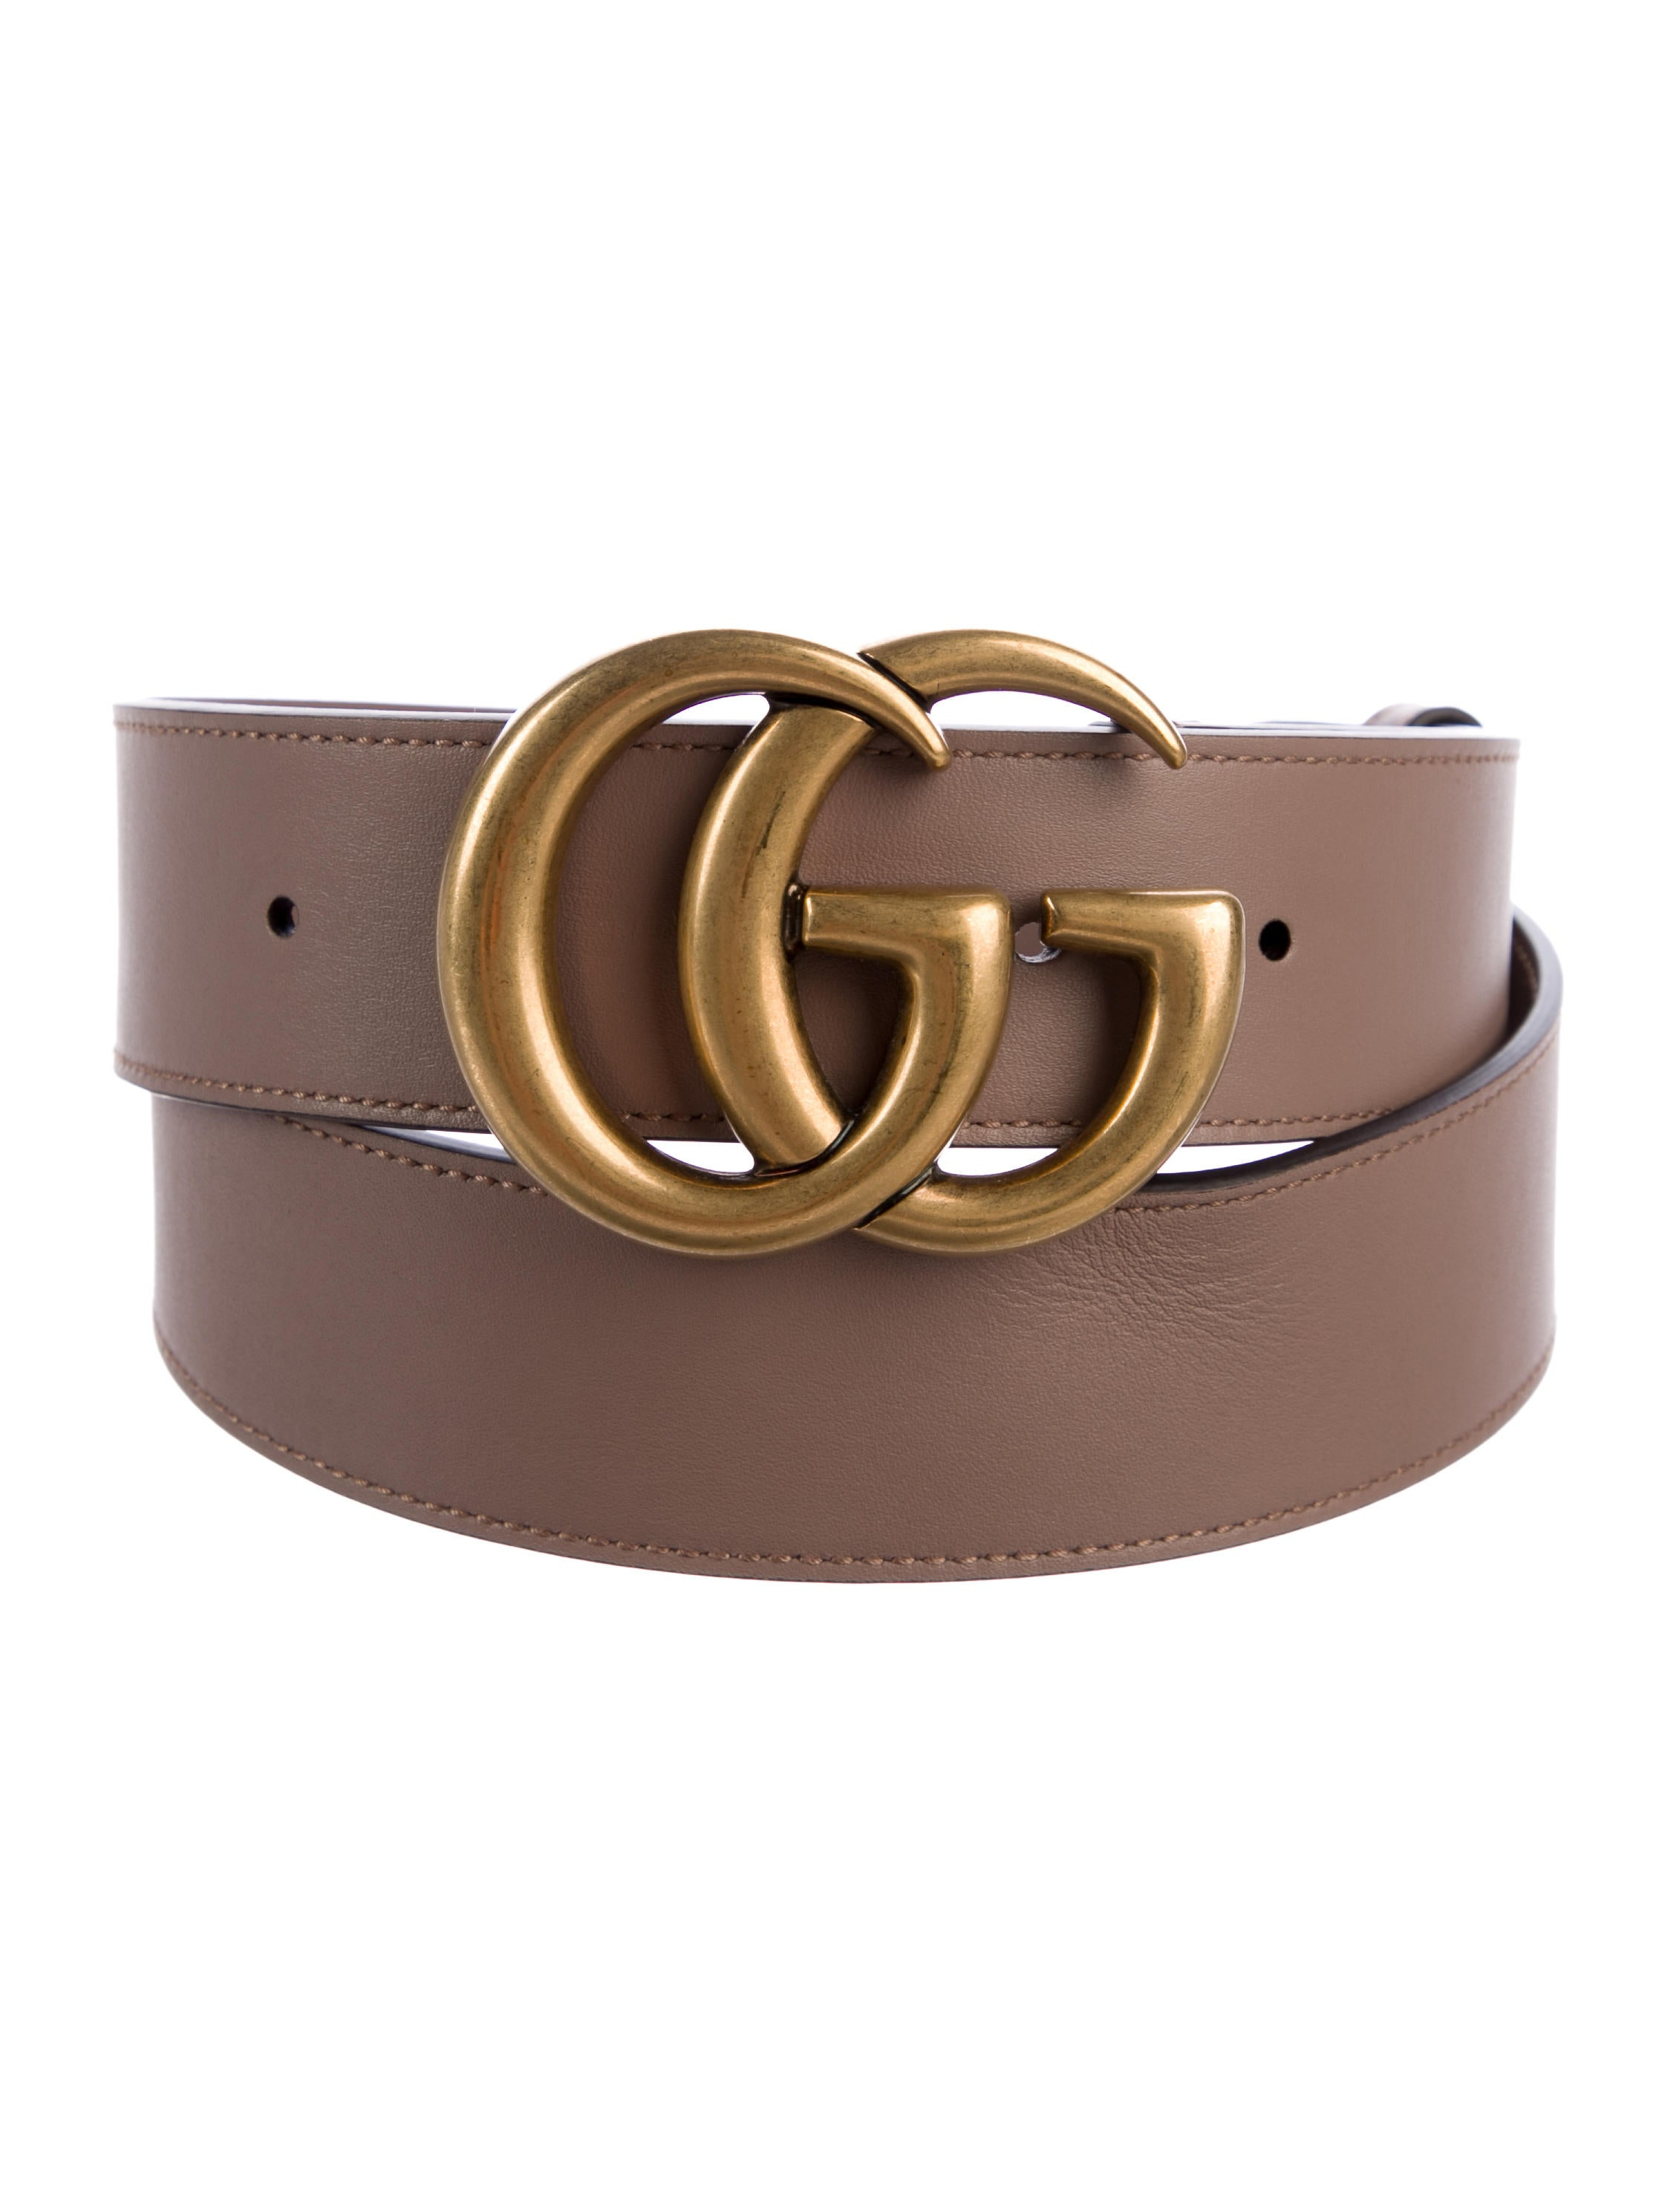 0370081b5fe Gucci GG Marmont Leather Belt - Accessories - GUC297885